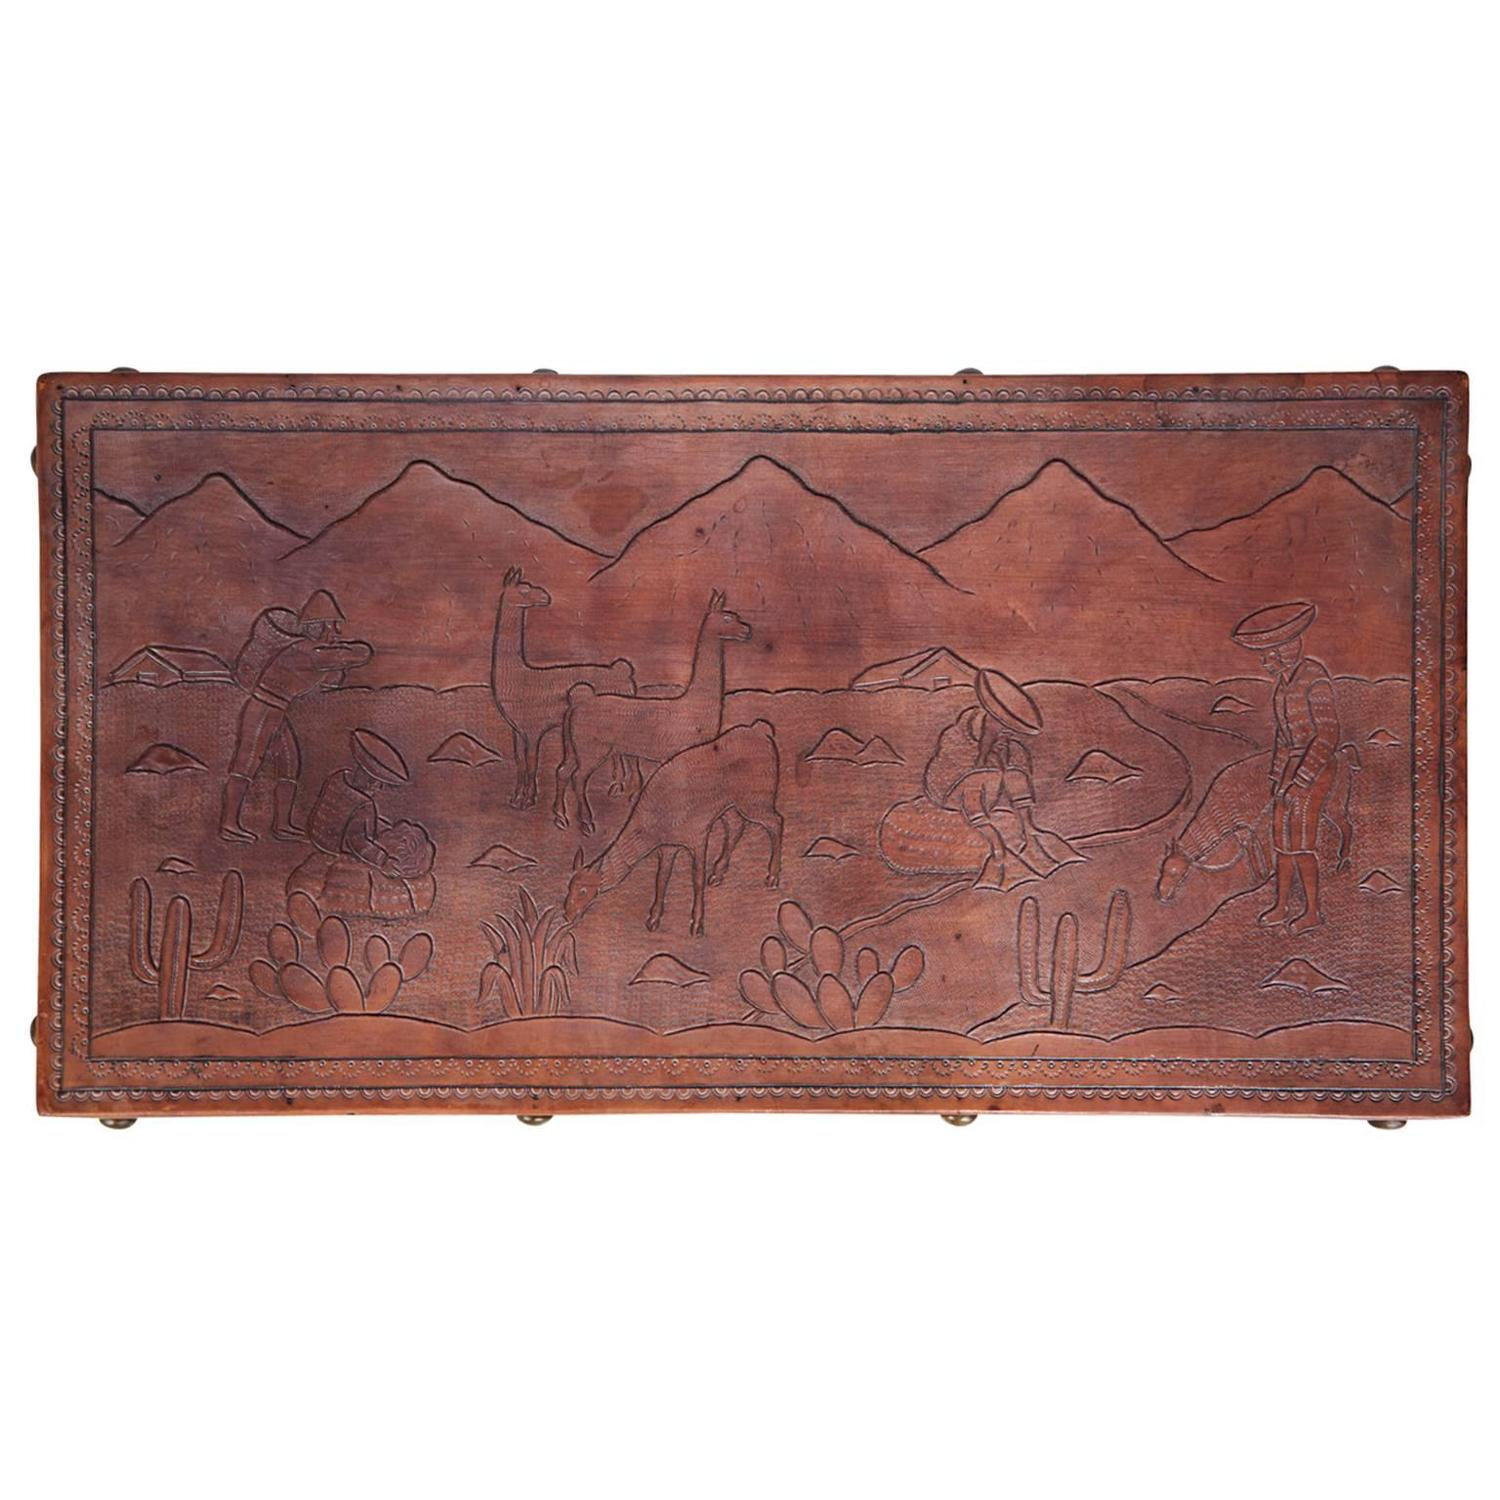 Peruvian Tooled Leather Bench or Coffee Table with South American Landscape 4e2d92d2e8